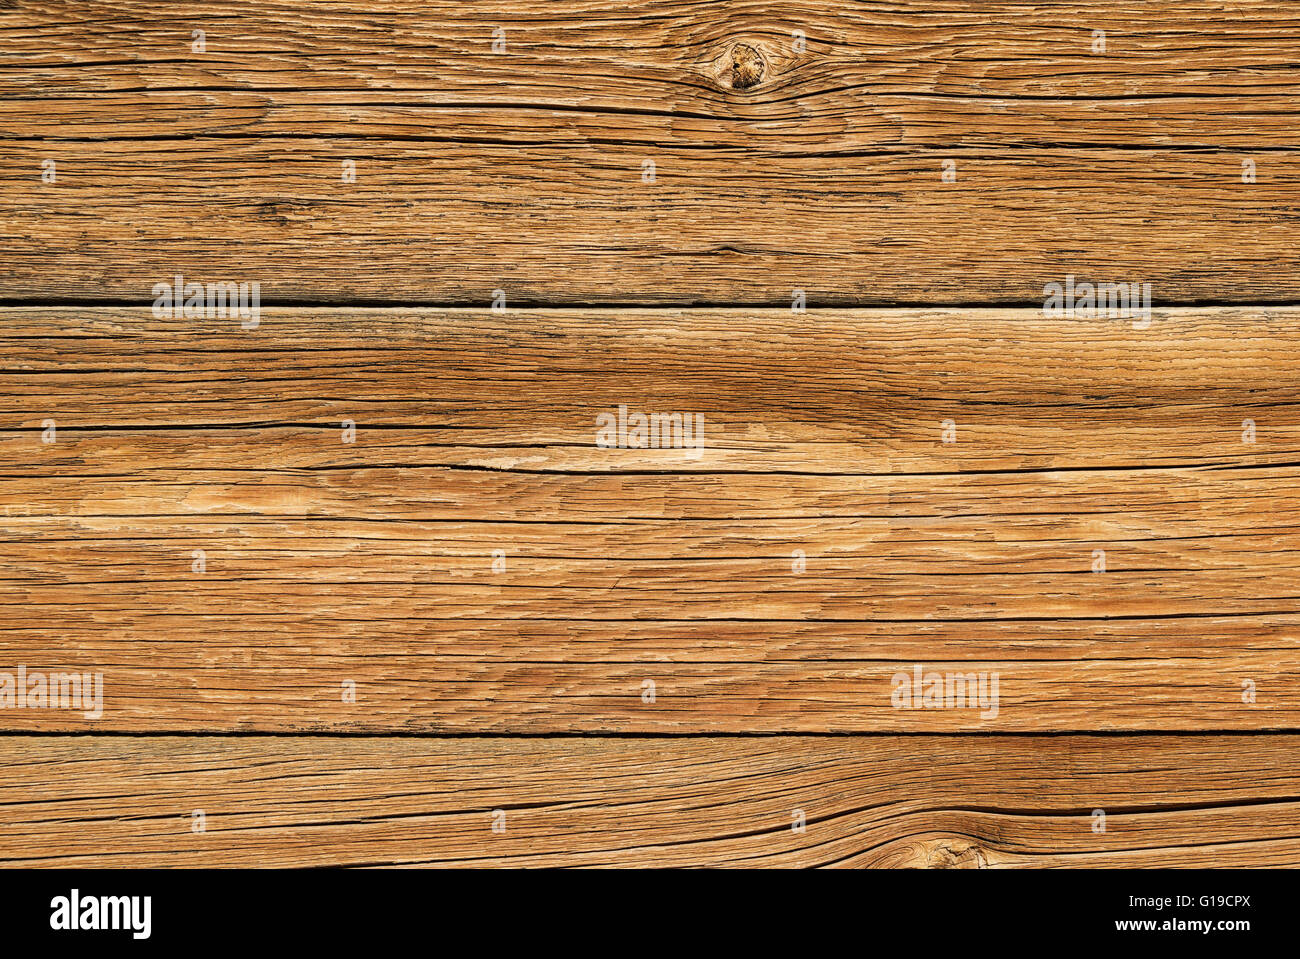 old weathered wood board background texture - Stock Image